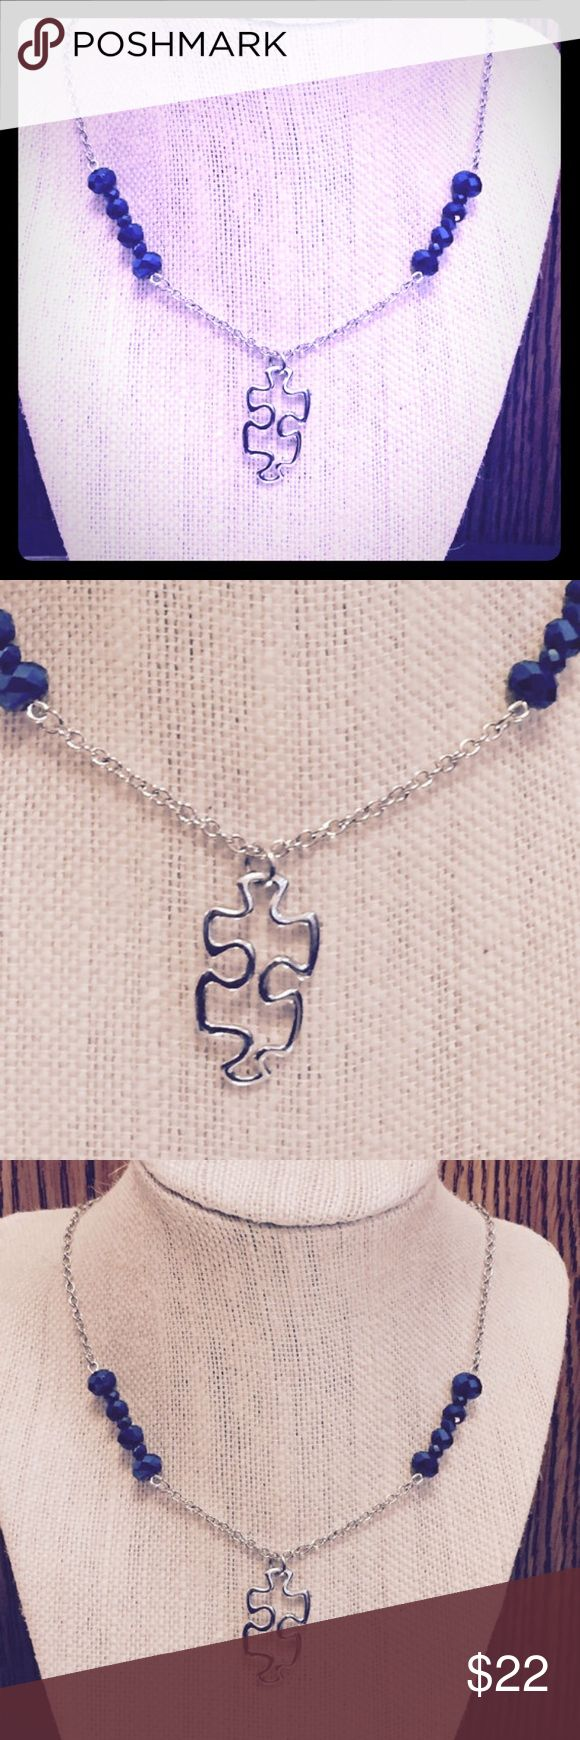 Puzzle Piece Blue Beaded Necklace Beautiful Puzzle Piece Necklace! A puzzle piece pendent with electric blue beading on each side! This necklace also shows off the support & awareness for the family's affected by autism. ❤️ Handmade by Ivy Leaf Accessories!  Jewelry Necklaces